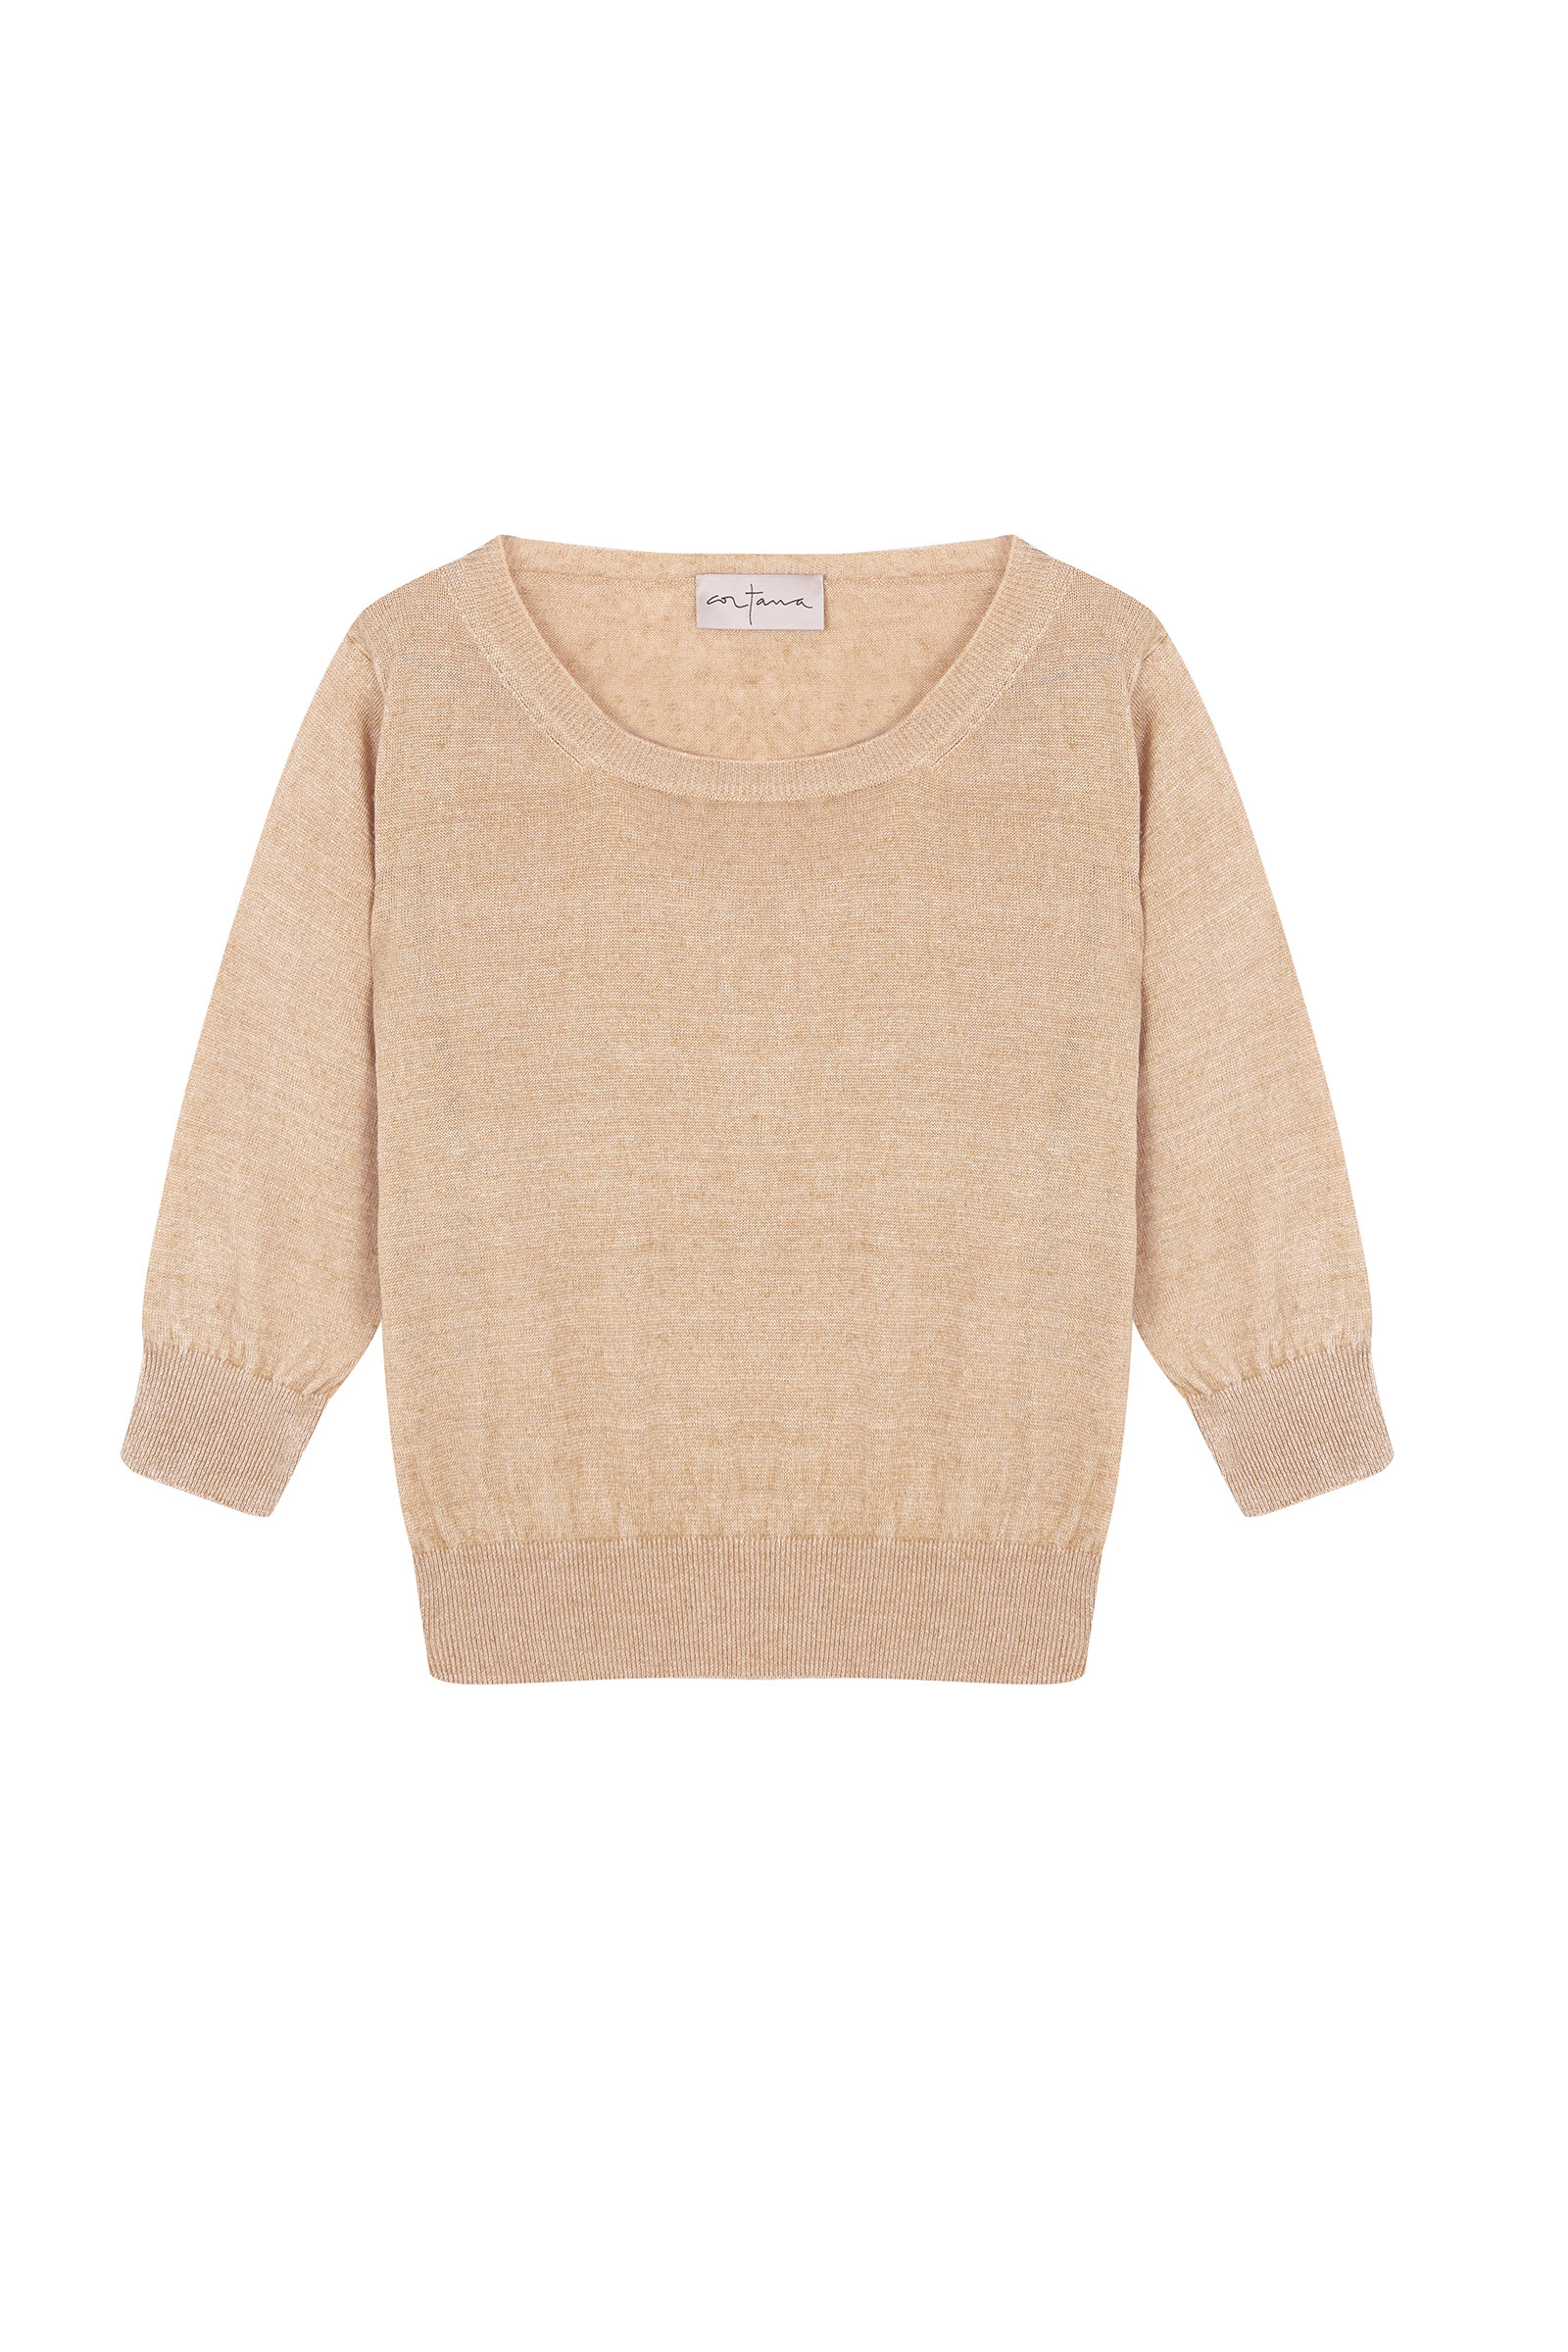 ONA TERRACOTA LINEN SWEATER - Cortana Moda